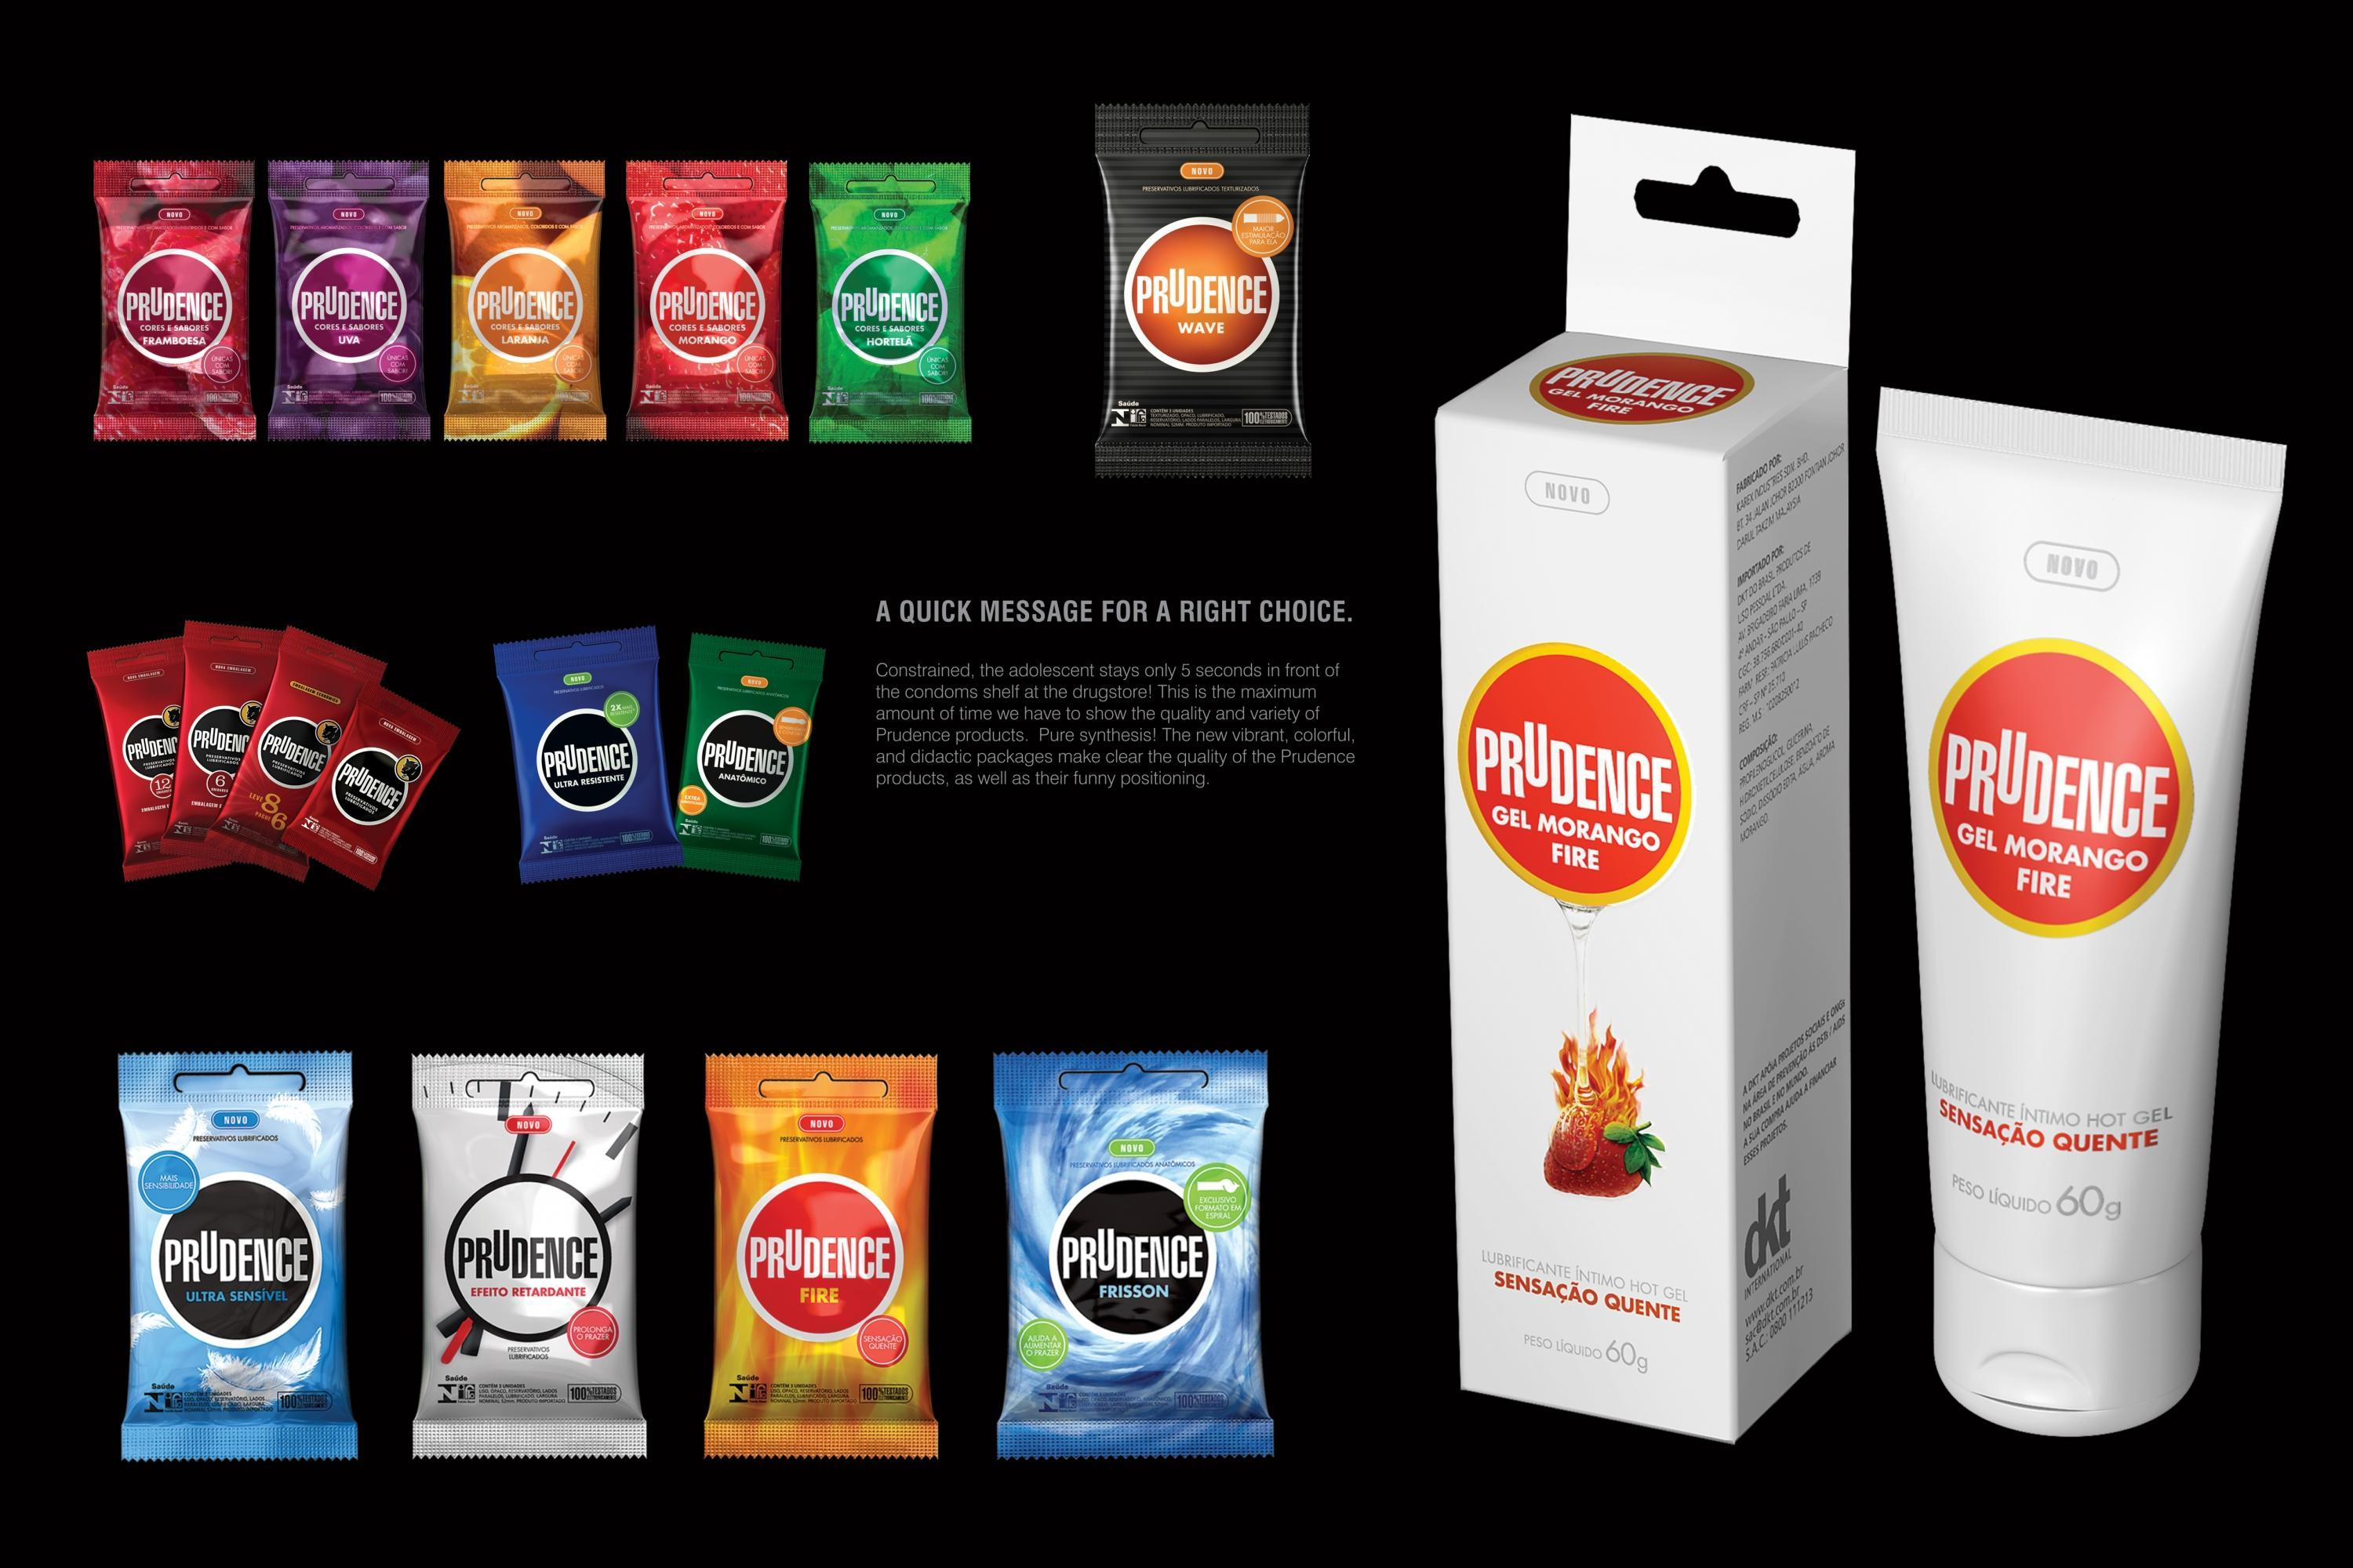 Dkt international prudence condoms packaging design to for International decor brands